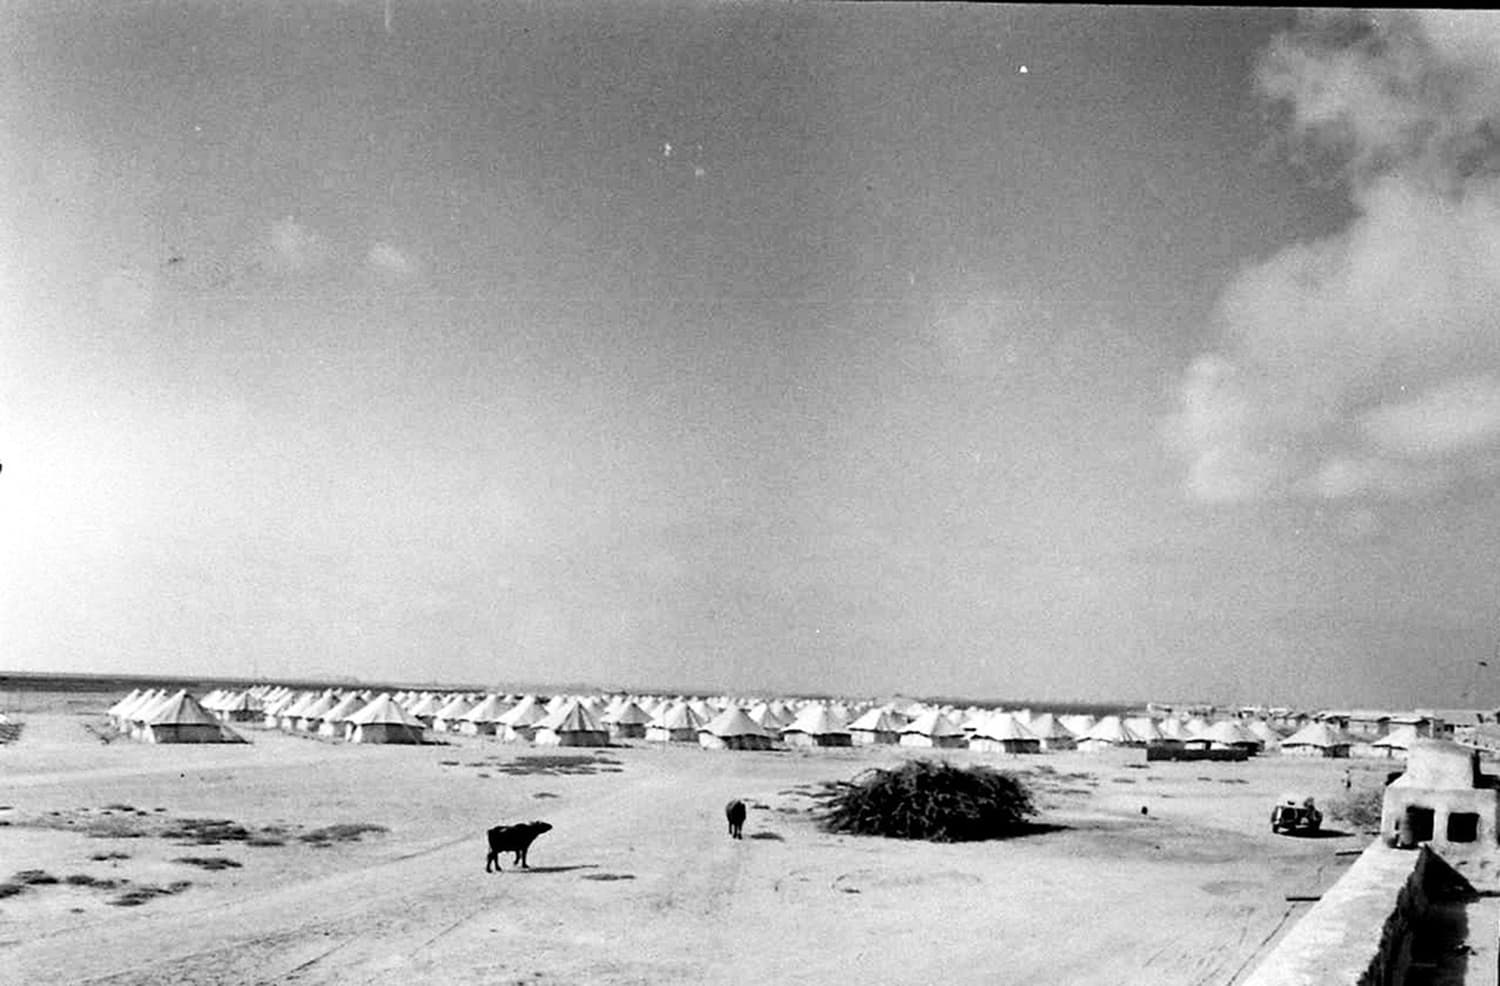 Karachi, 1948: An open area dotted by hundreds of temporary camps, housing government officials who ran matters of the country and the city from inside these dusty tents. Source: Pakistan's Capital (A feature in 'LIFE' Magazine's June, 1948 issue).